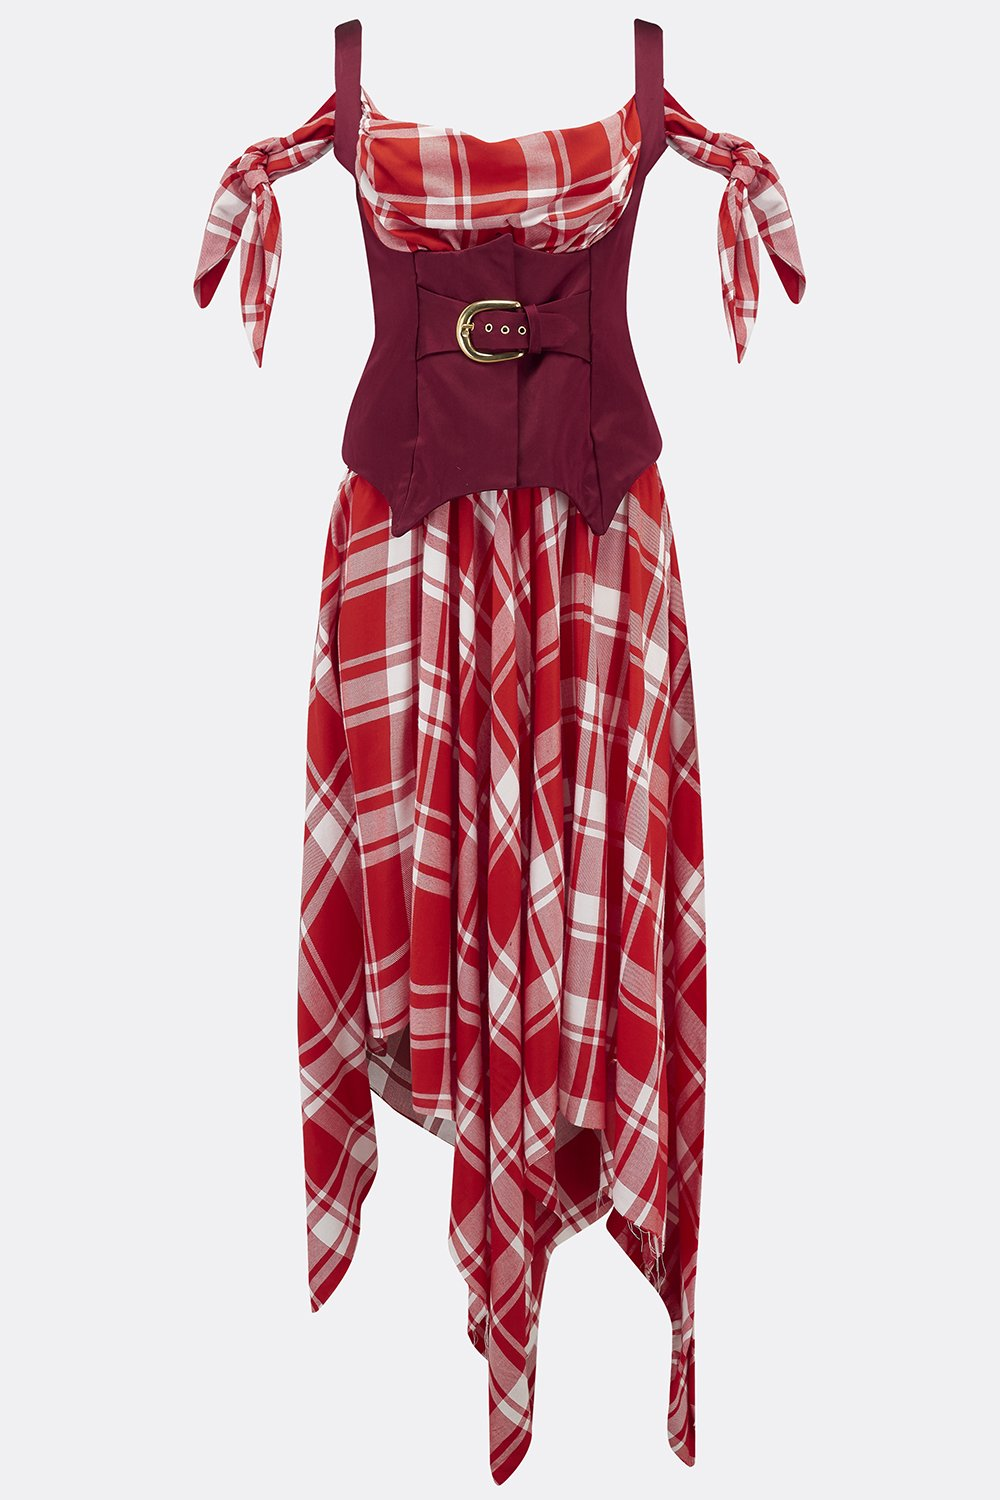 TORTUGA DRESS IN RED CHECK-womenswear-A Child Of The Jago